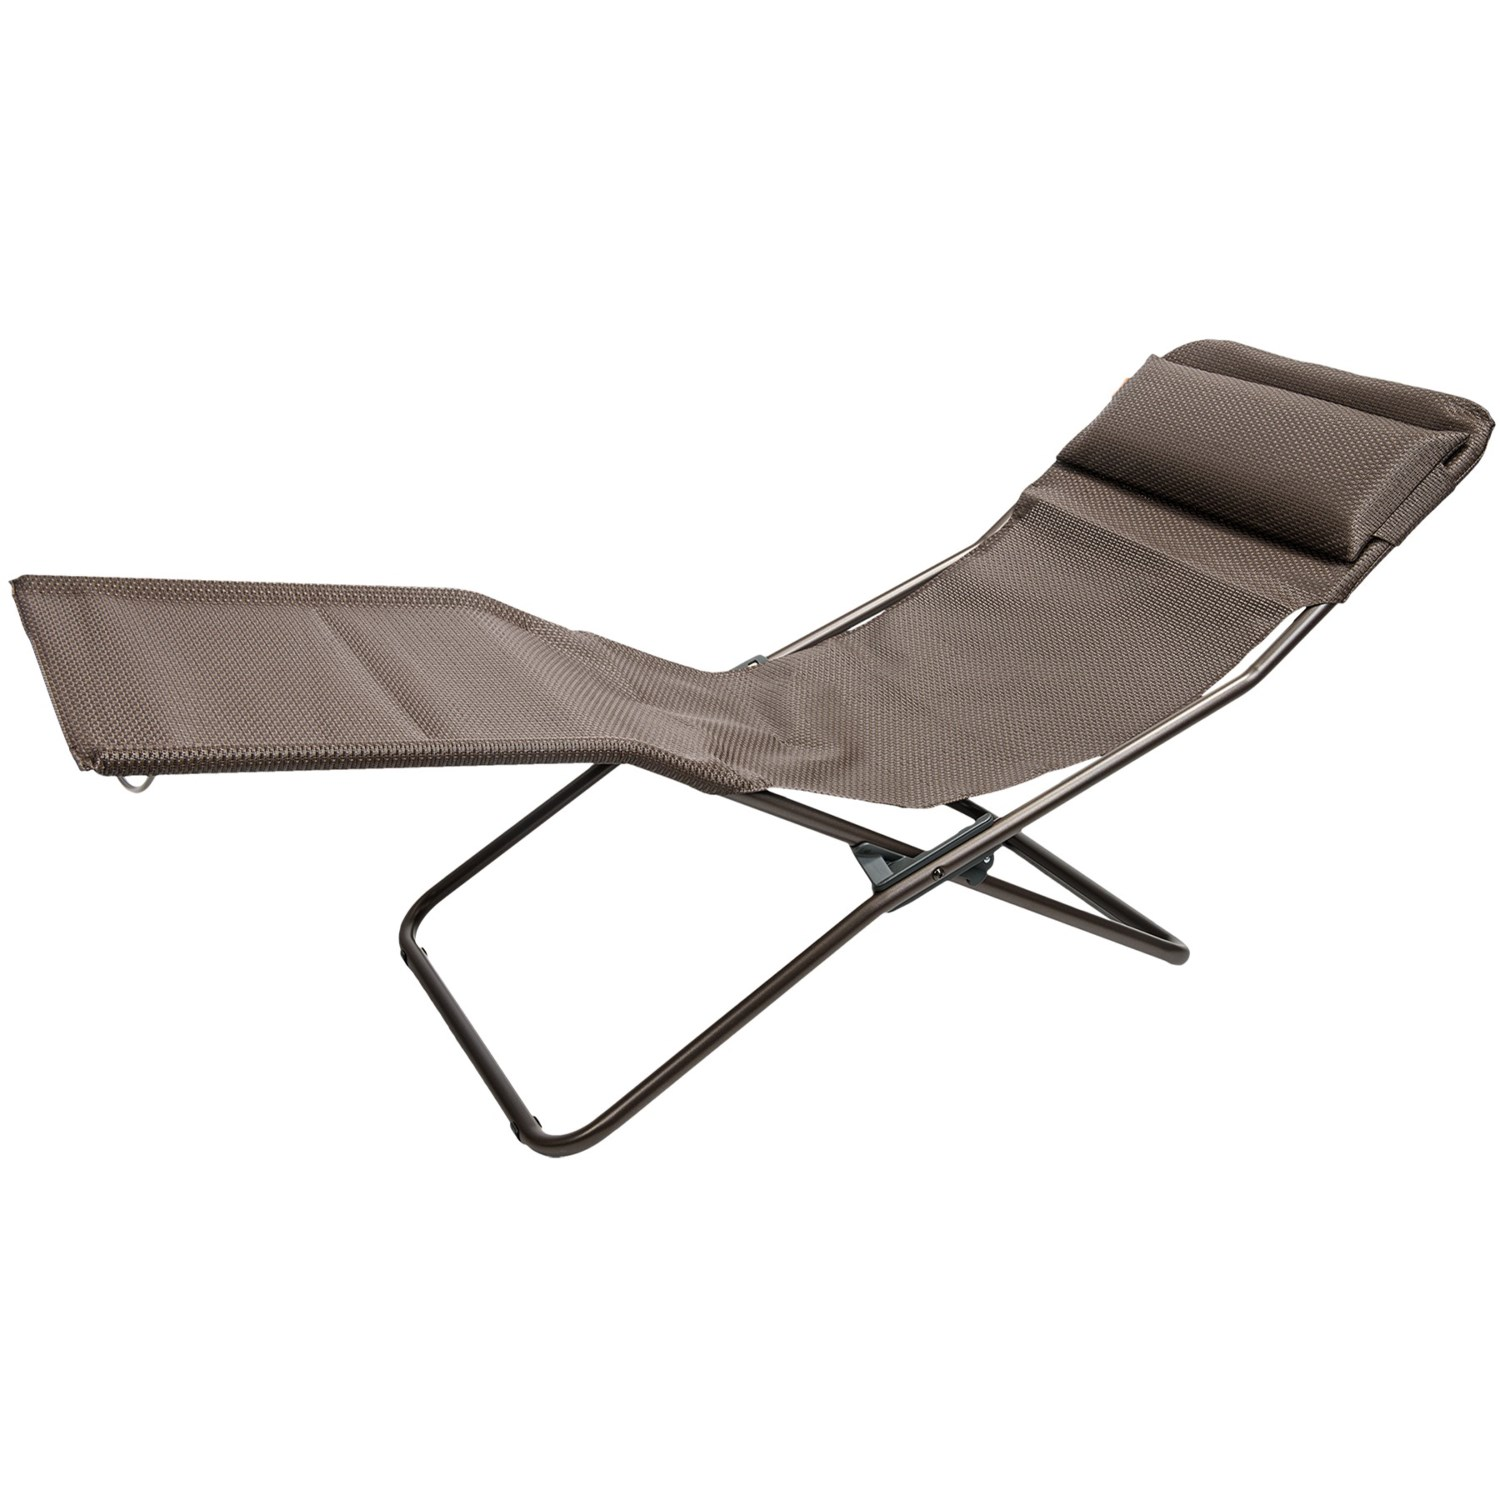 Lafuma Transalounge Folding Recliner Chair - Save 26%